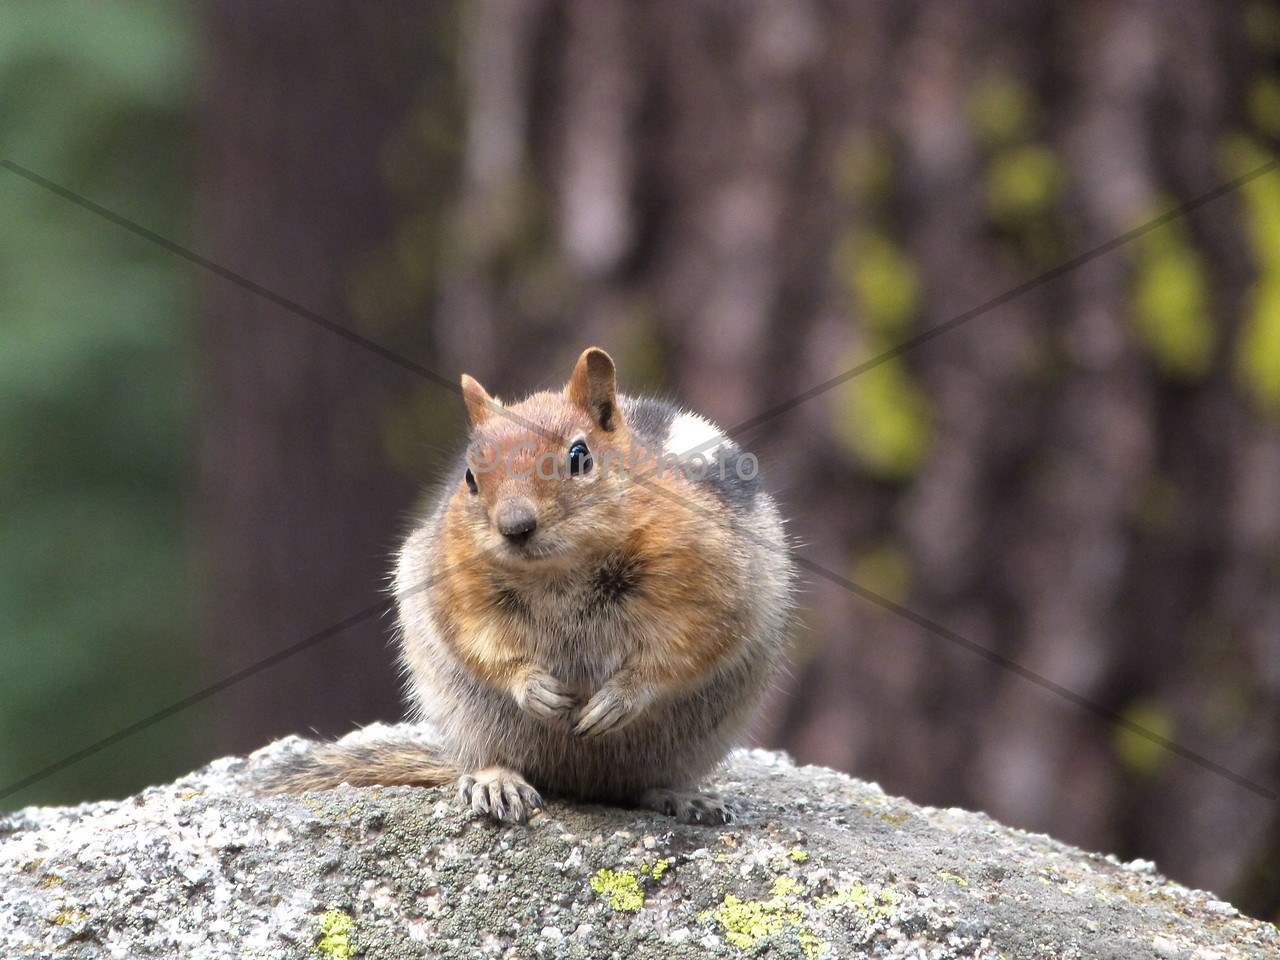 Yosemite chipmunk